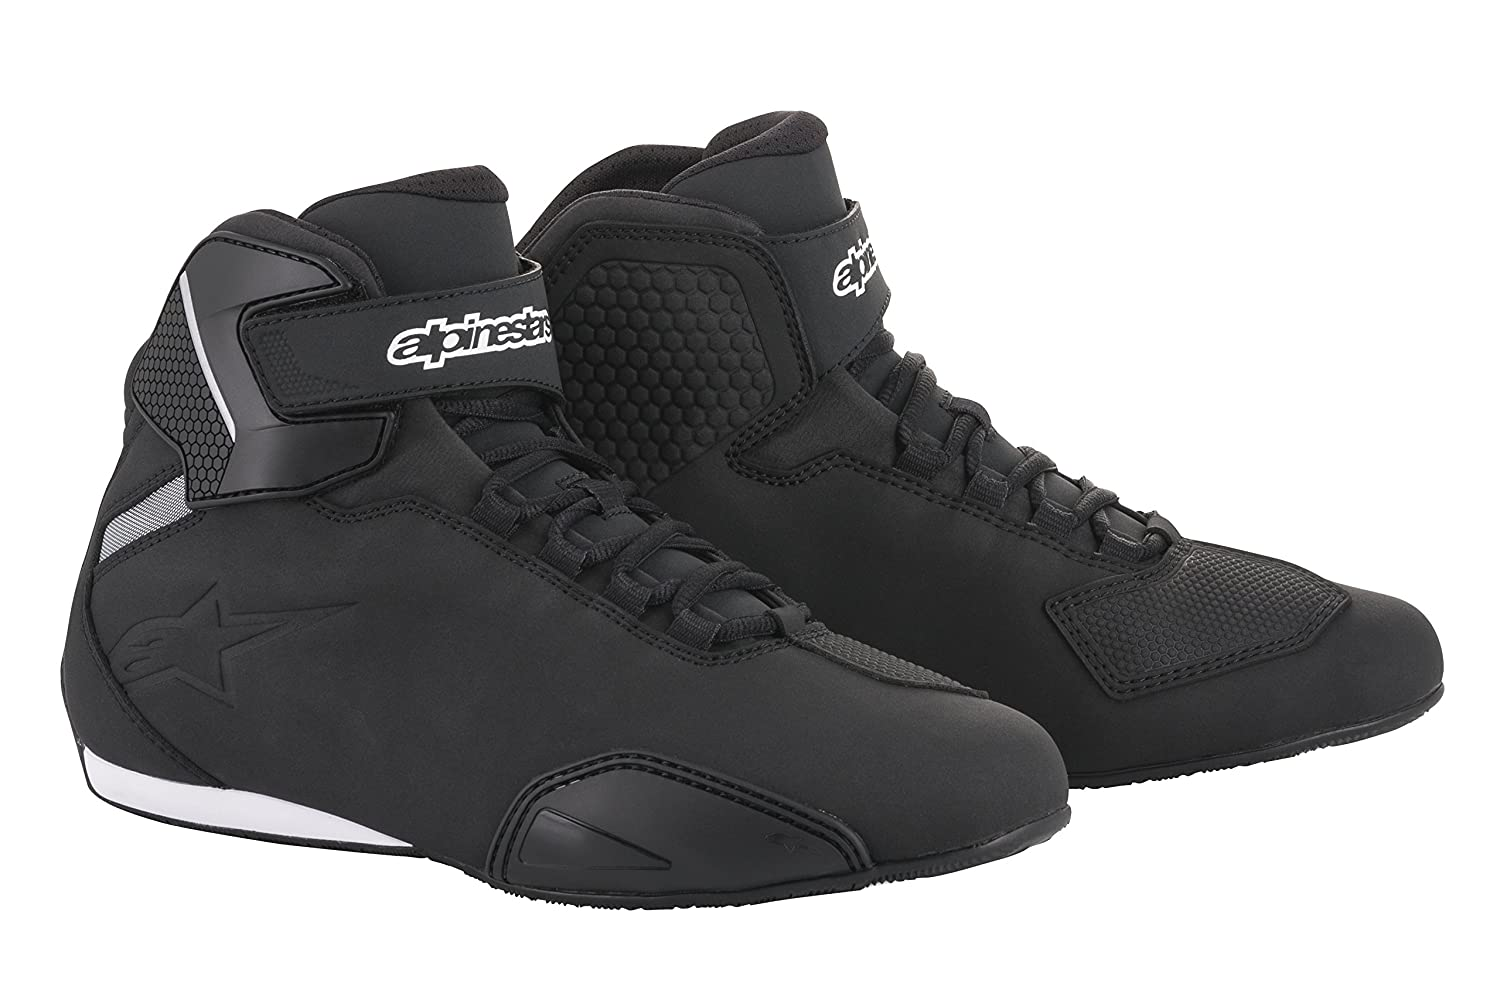 Alpinestars Men's 251551810105 Shoe (Black, Size 10.5)